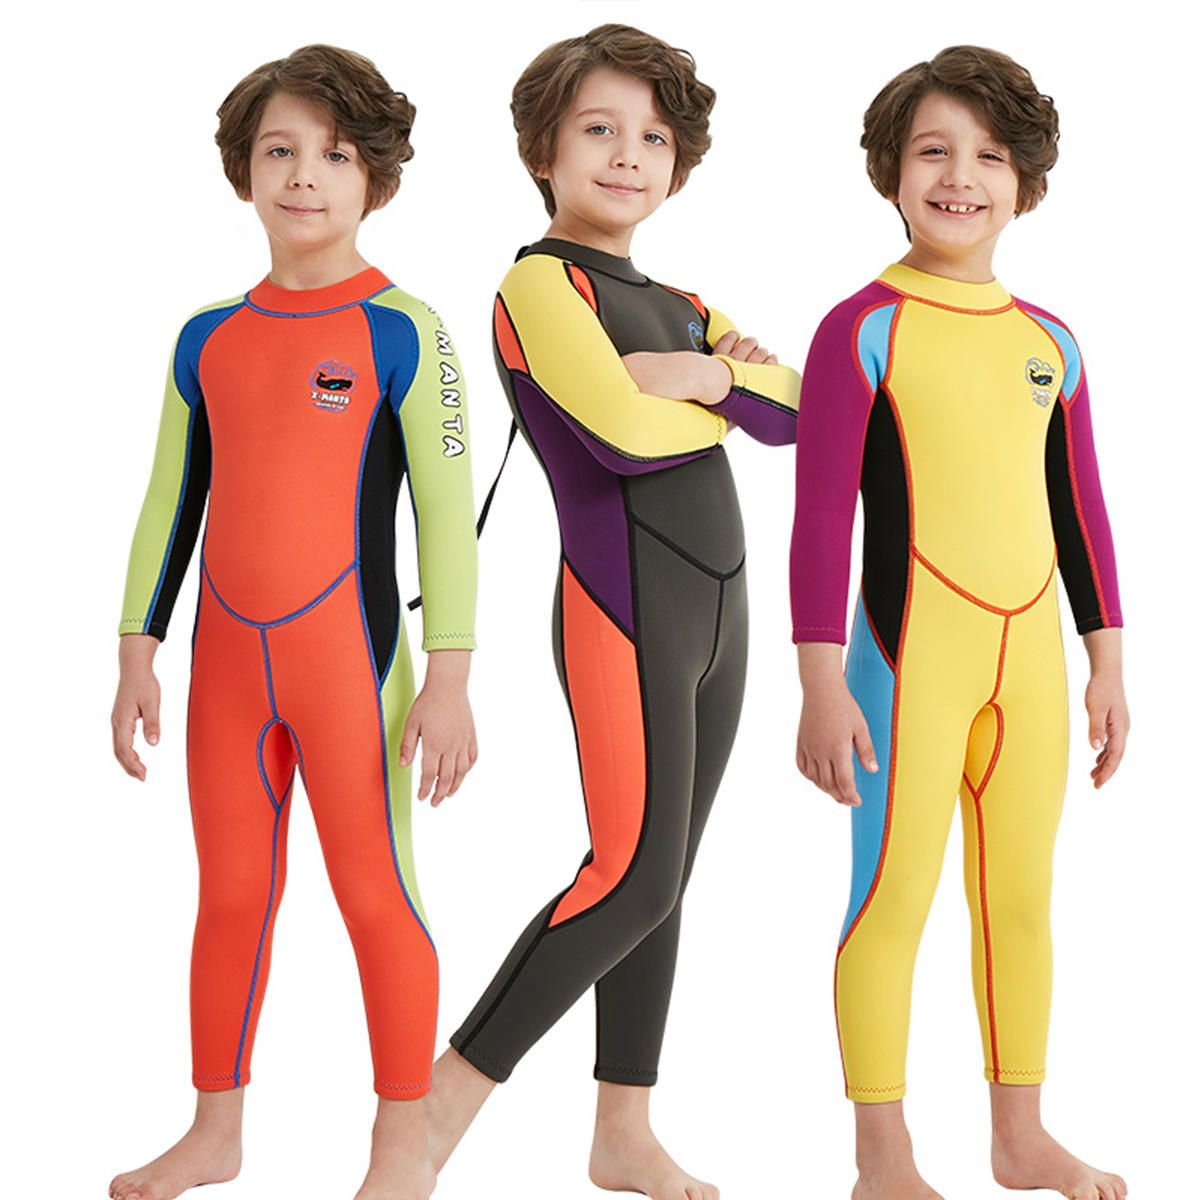 Kids Boy Scuba One piece Diving Suit UV Protection Thermal Snorkeling Wetsuit Surfing Swimwear